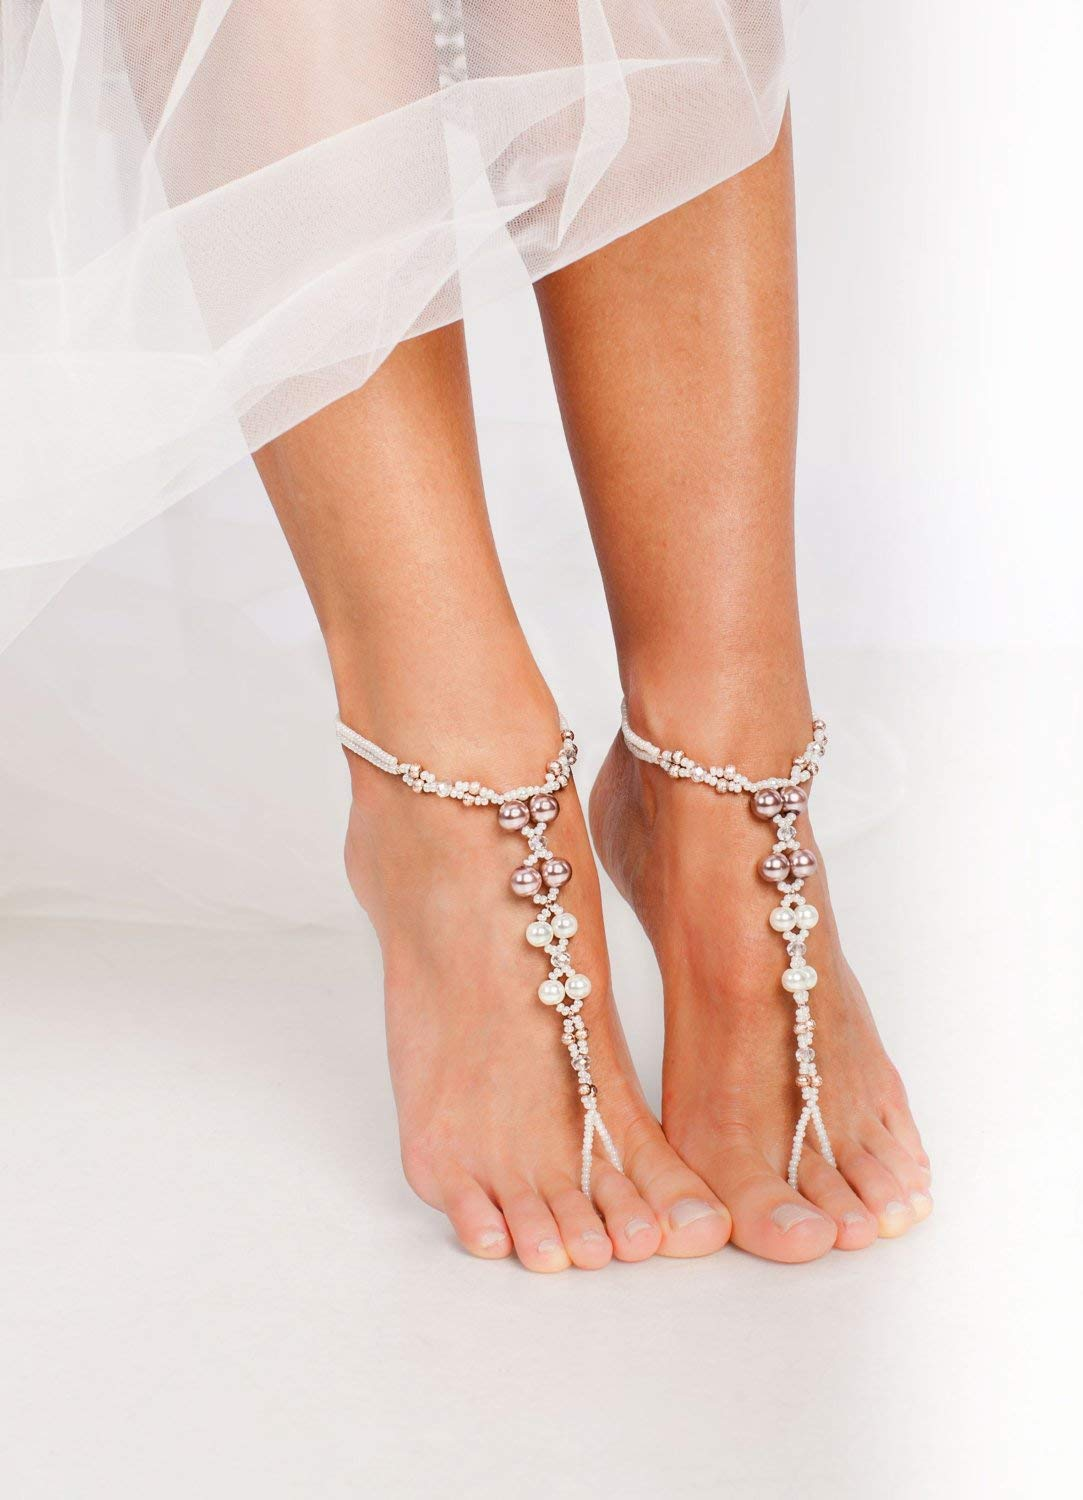 Beaded Barefoot sandals Bridal foot jewelry Rhinestone and Pearl Beach wedding Barefoot Sandals Bridal accessory Foot jewelry Wedding shoes